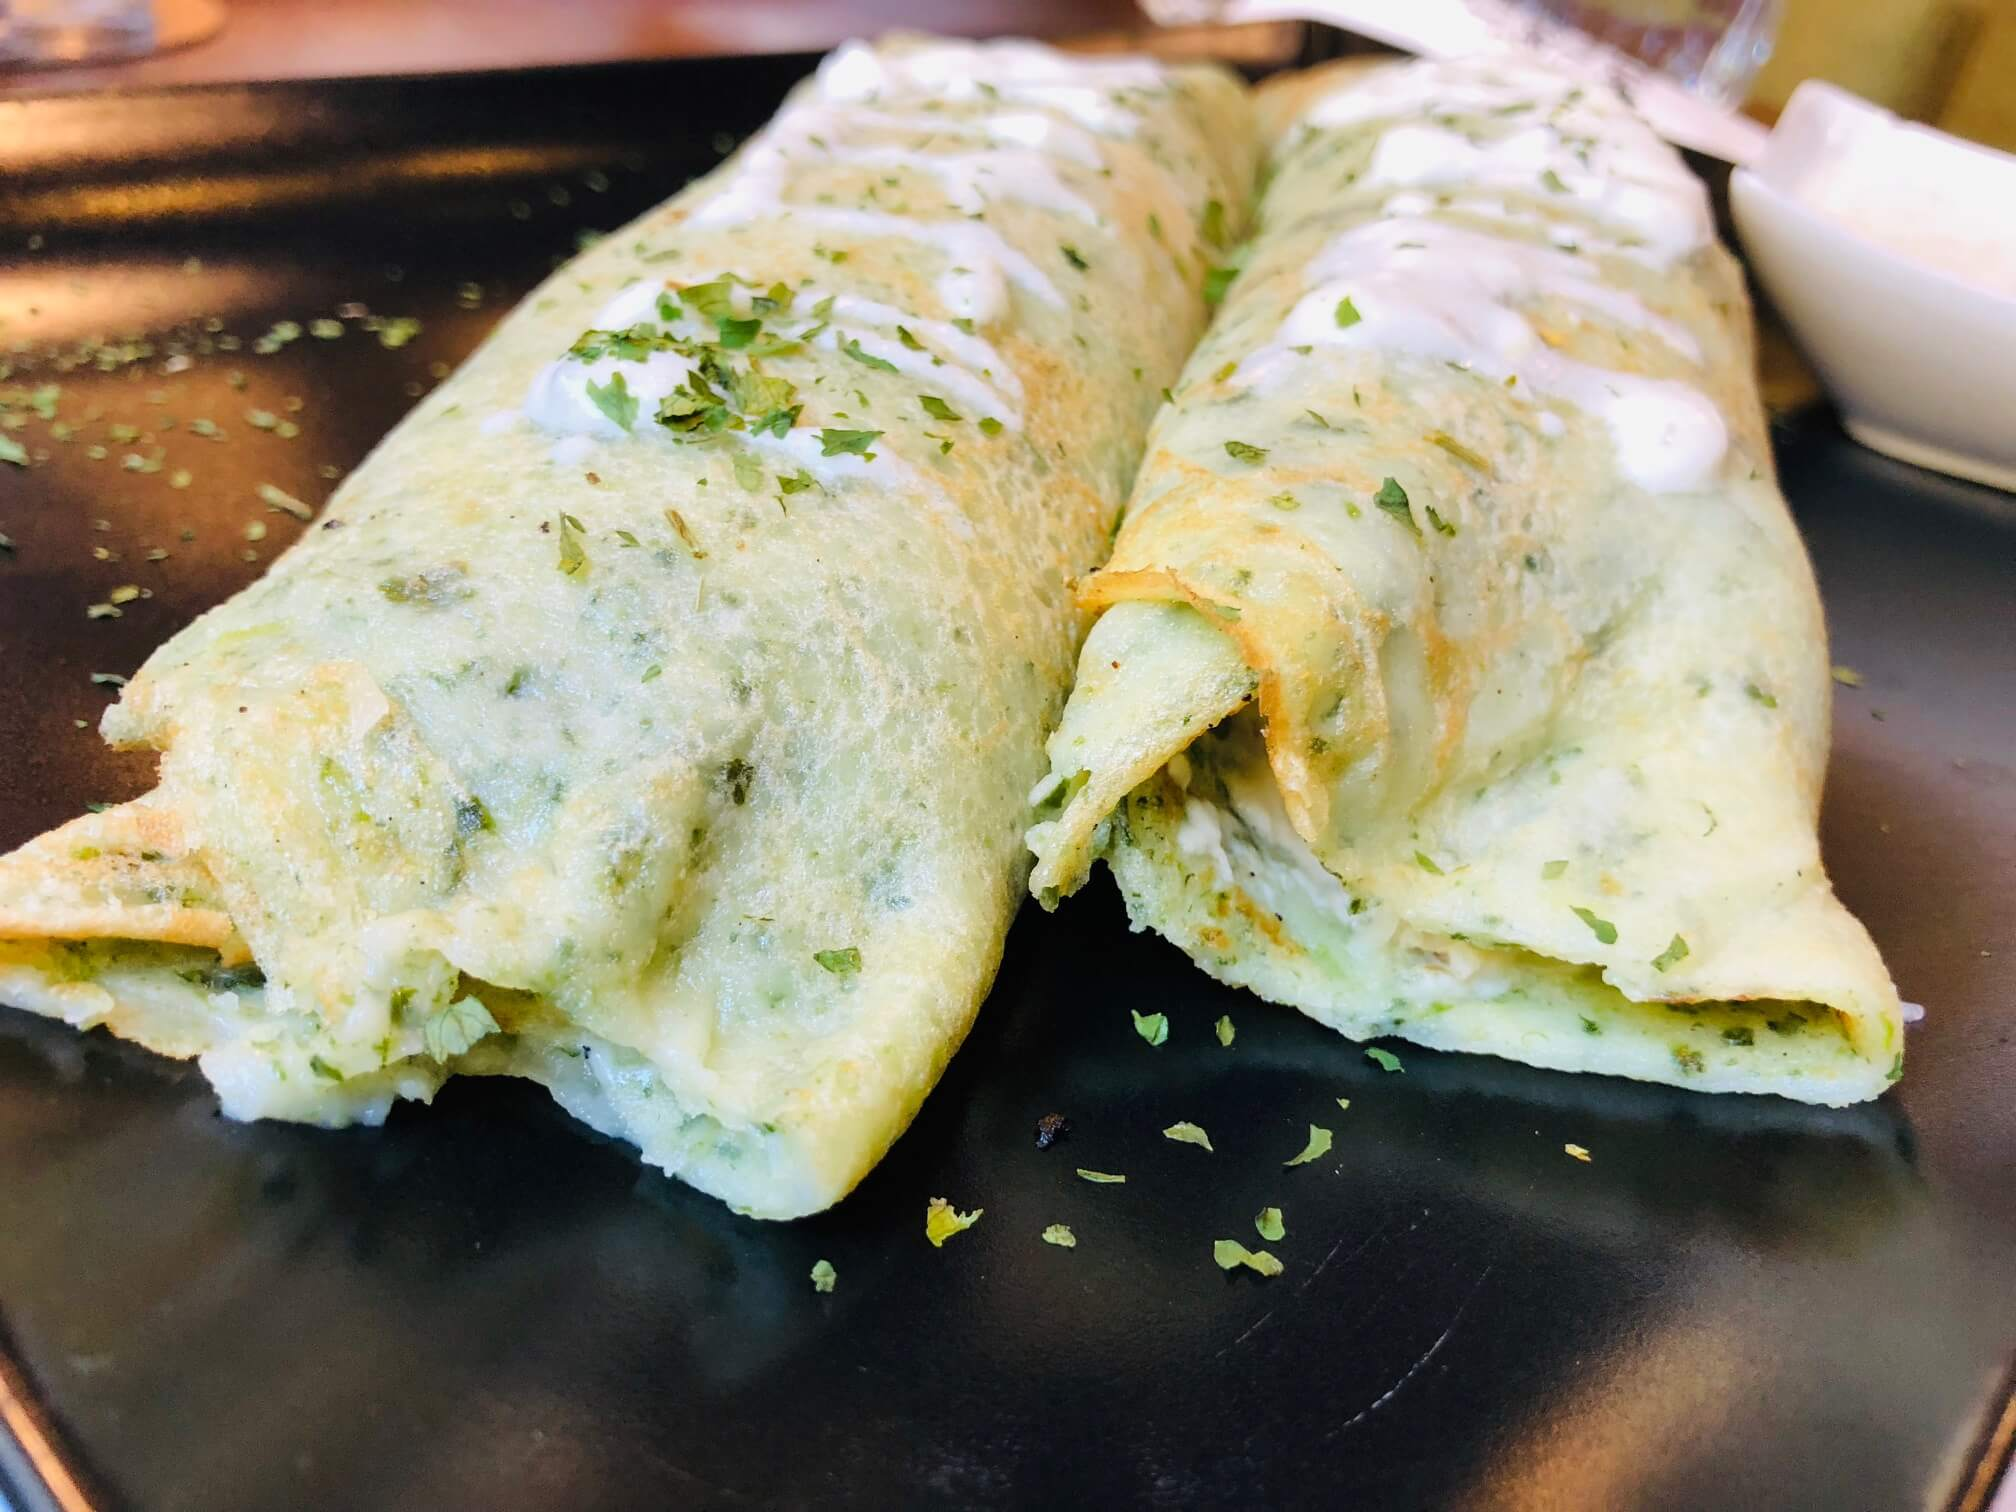 Crepes filled with spinach and chicken